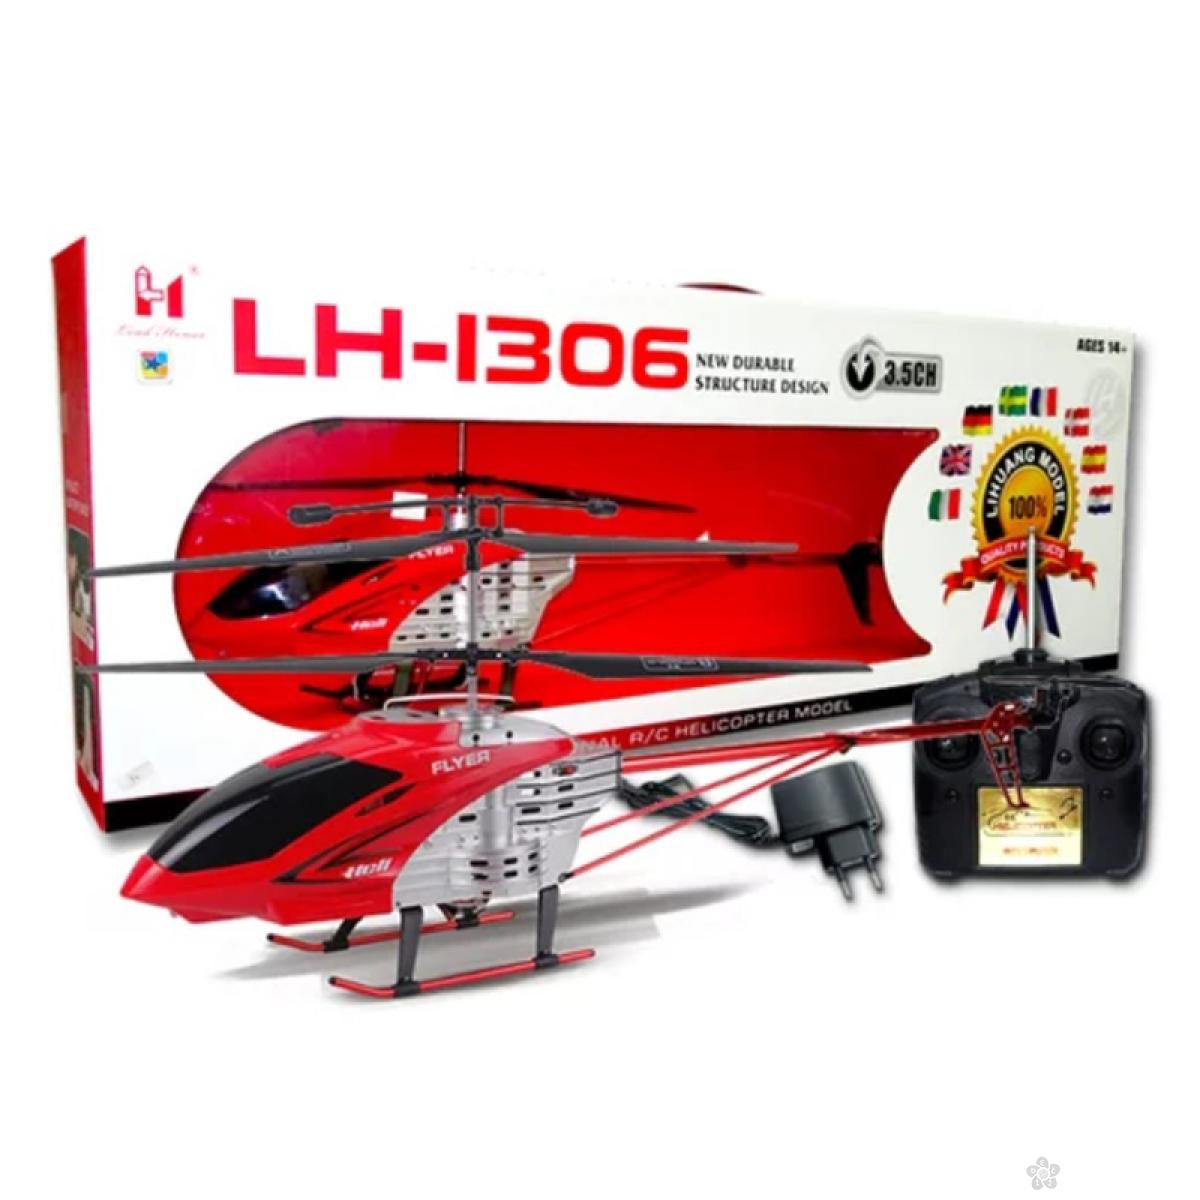 Helikopter R/C LH1306